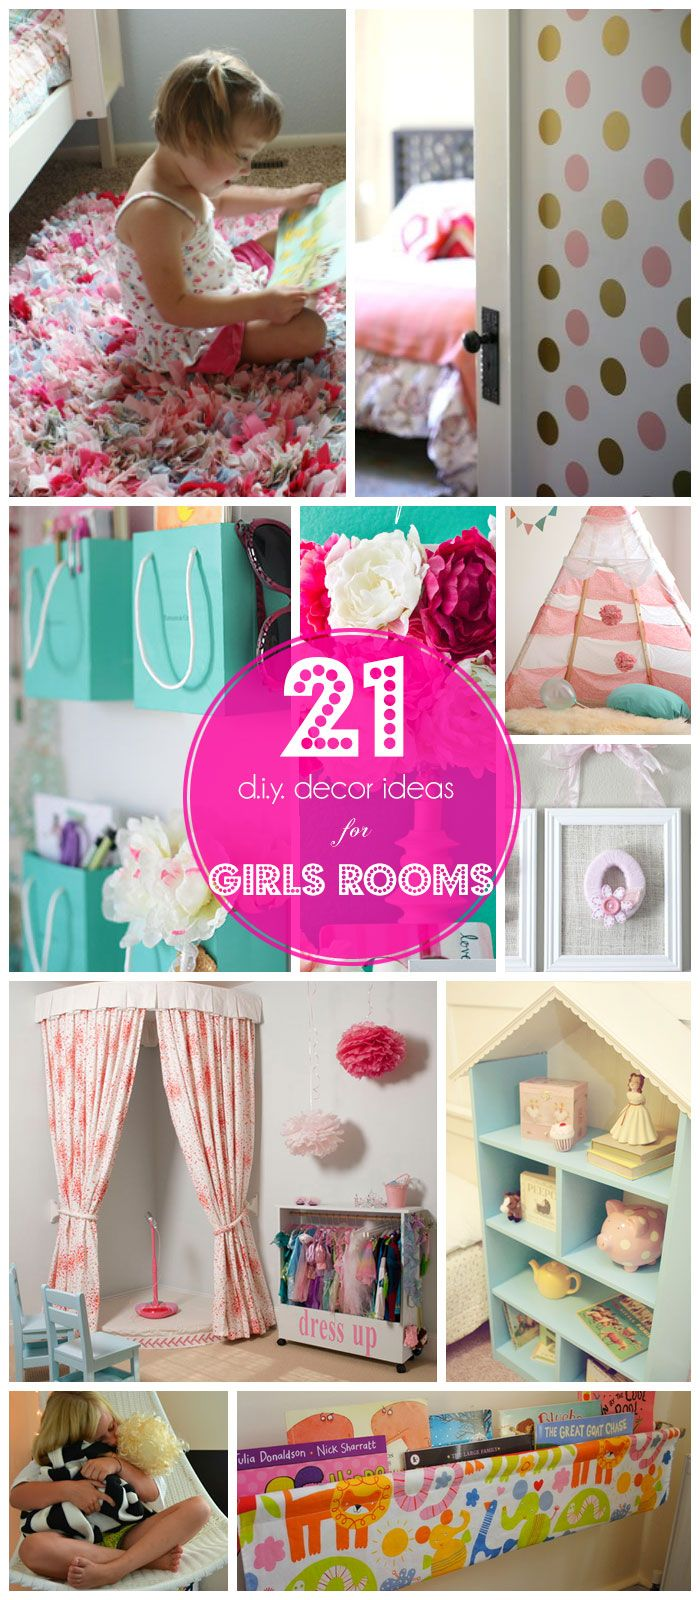 Homemade decoration ideas for girls bedrooms - Best 25 Girls Bedroom Decorating Ideas On Pinterest Girl Bedroom Decorations Teenage Girl Bedroom Decor And Teenage Girl Bedrooms